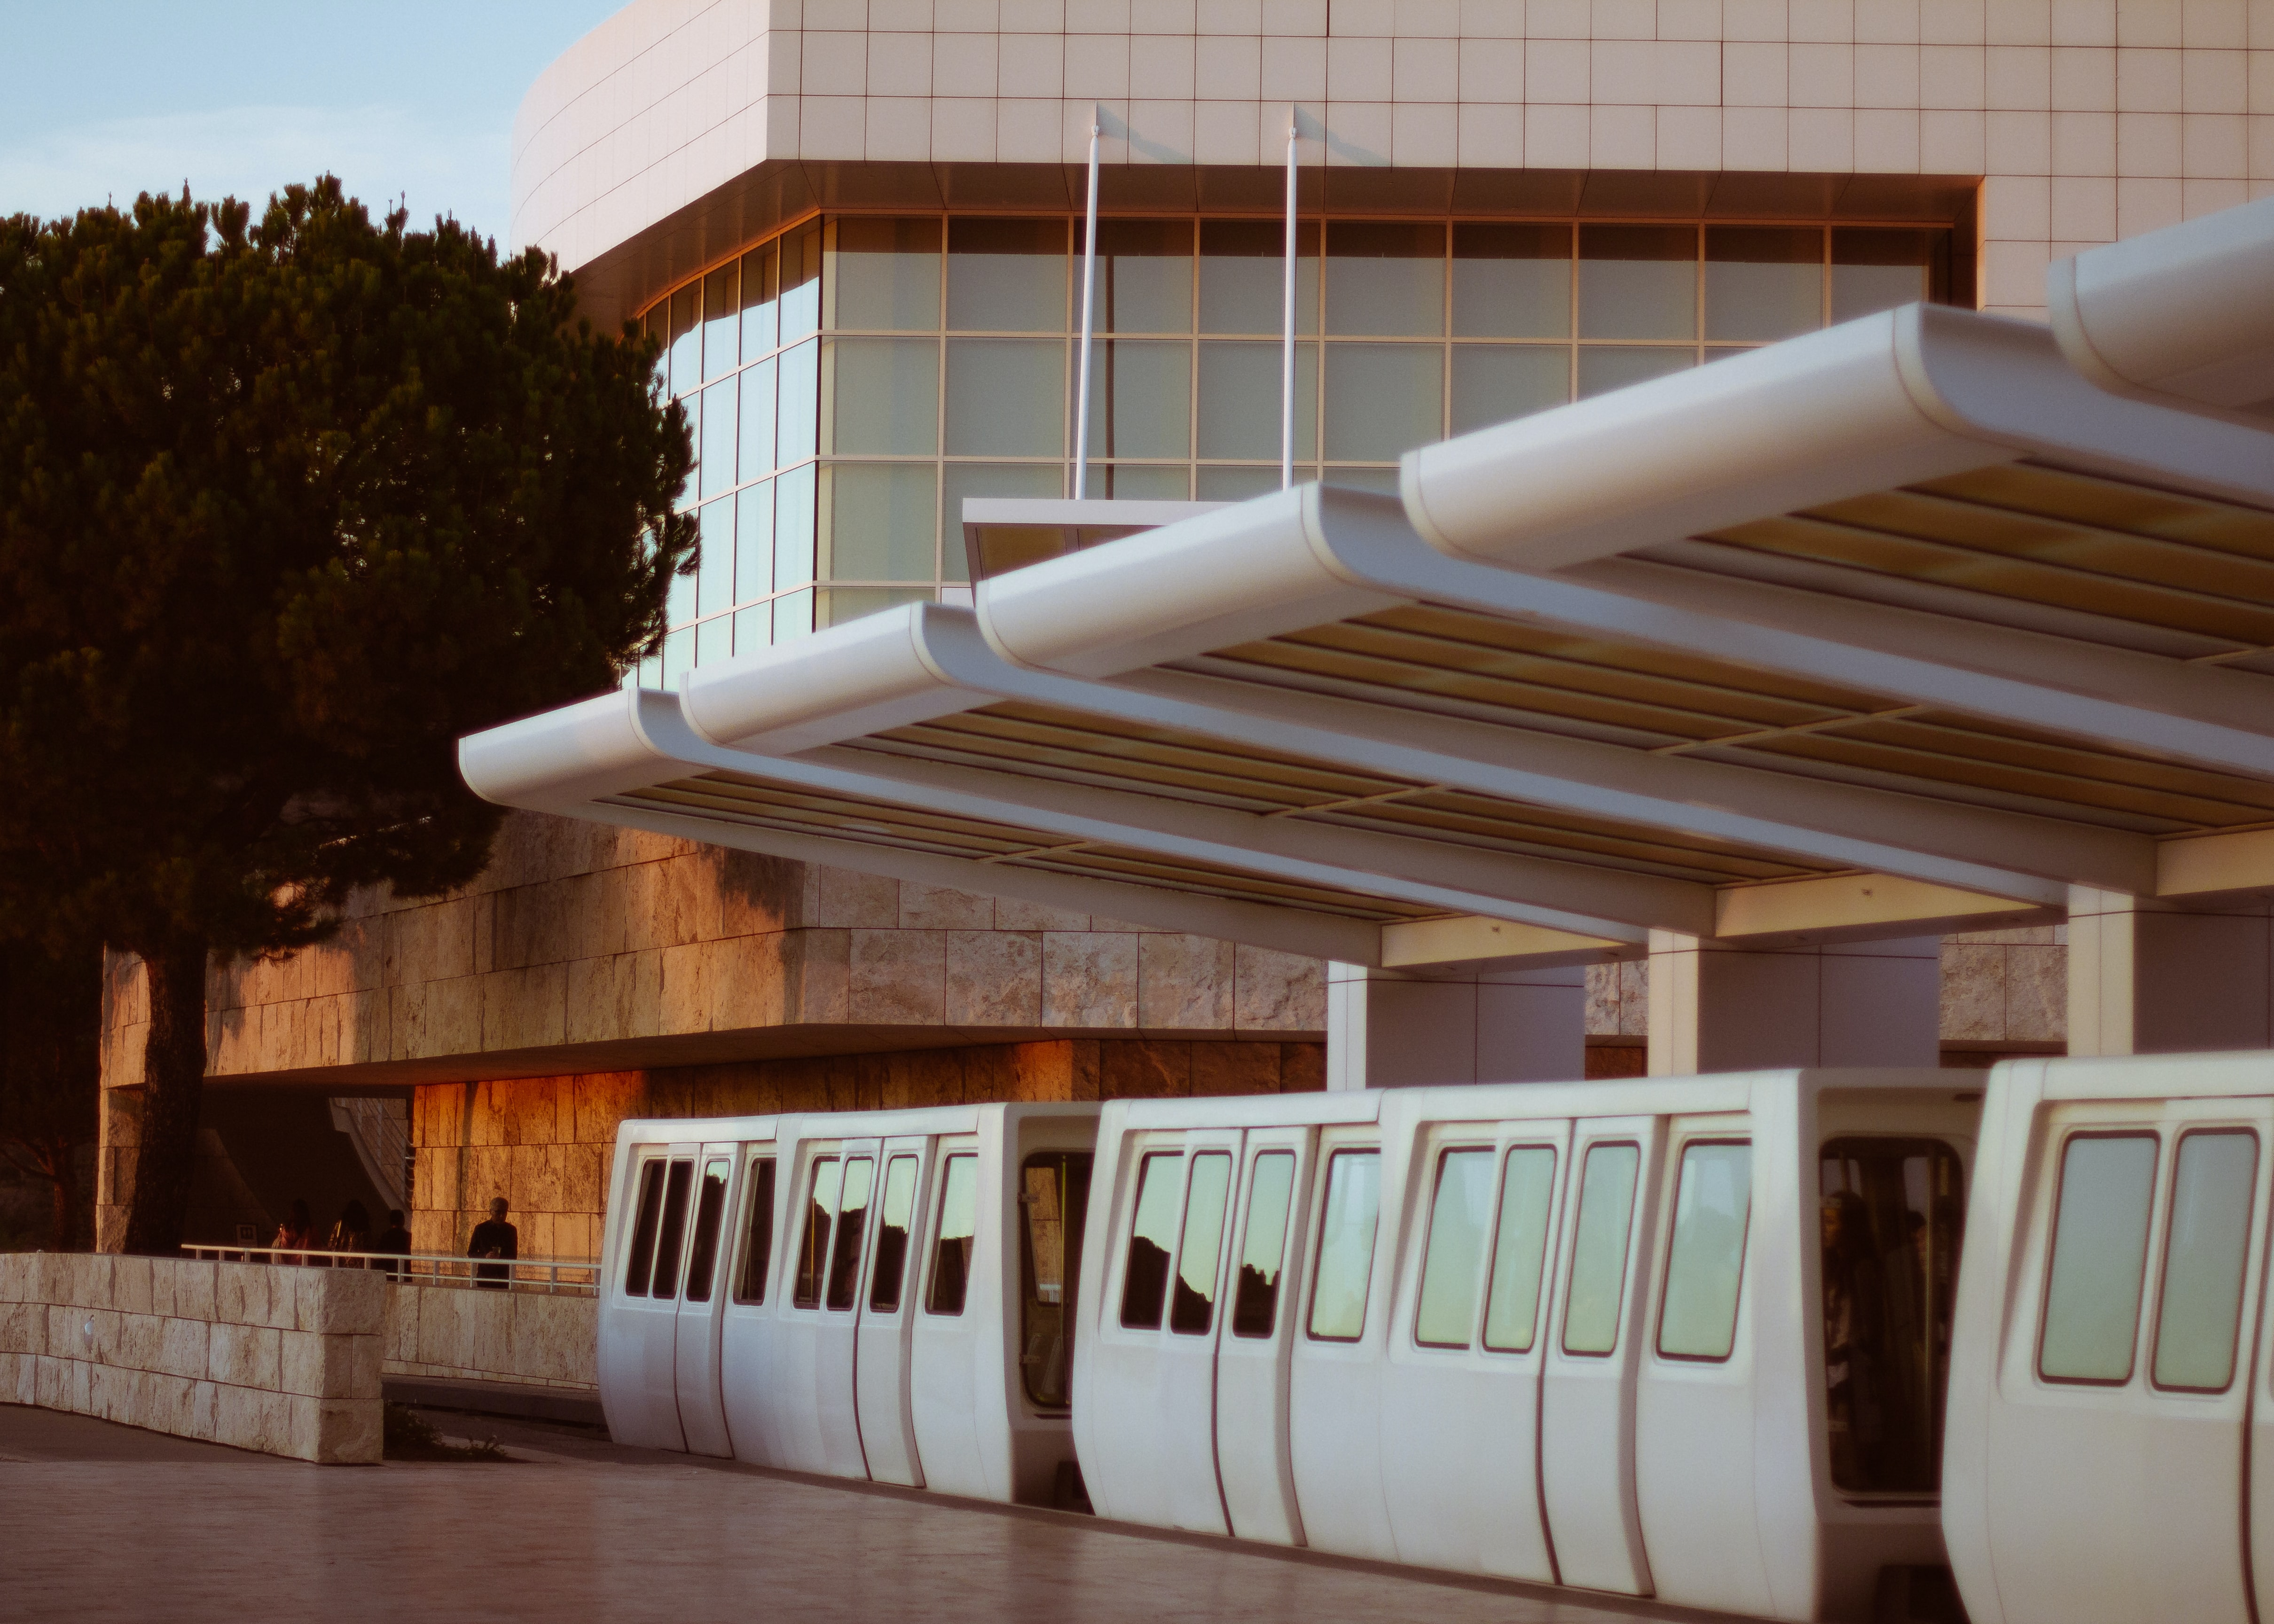 A modern city tram at the Getty Museum